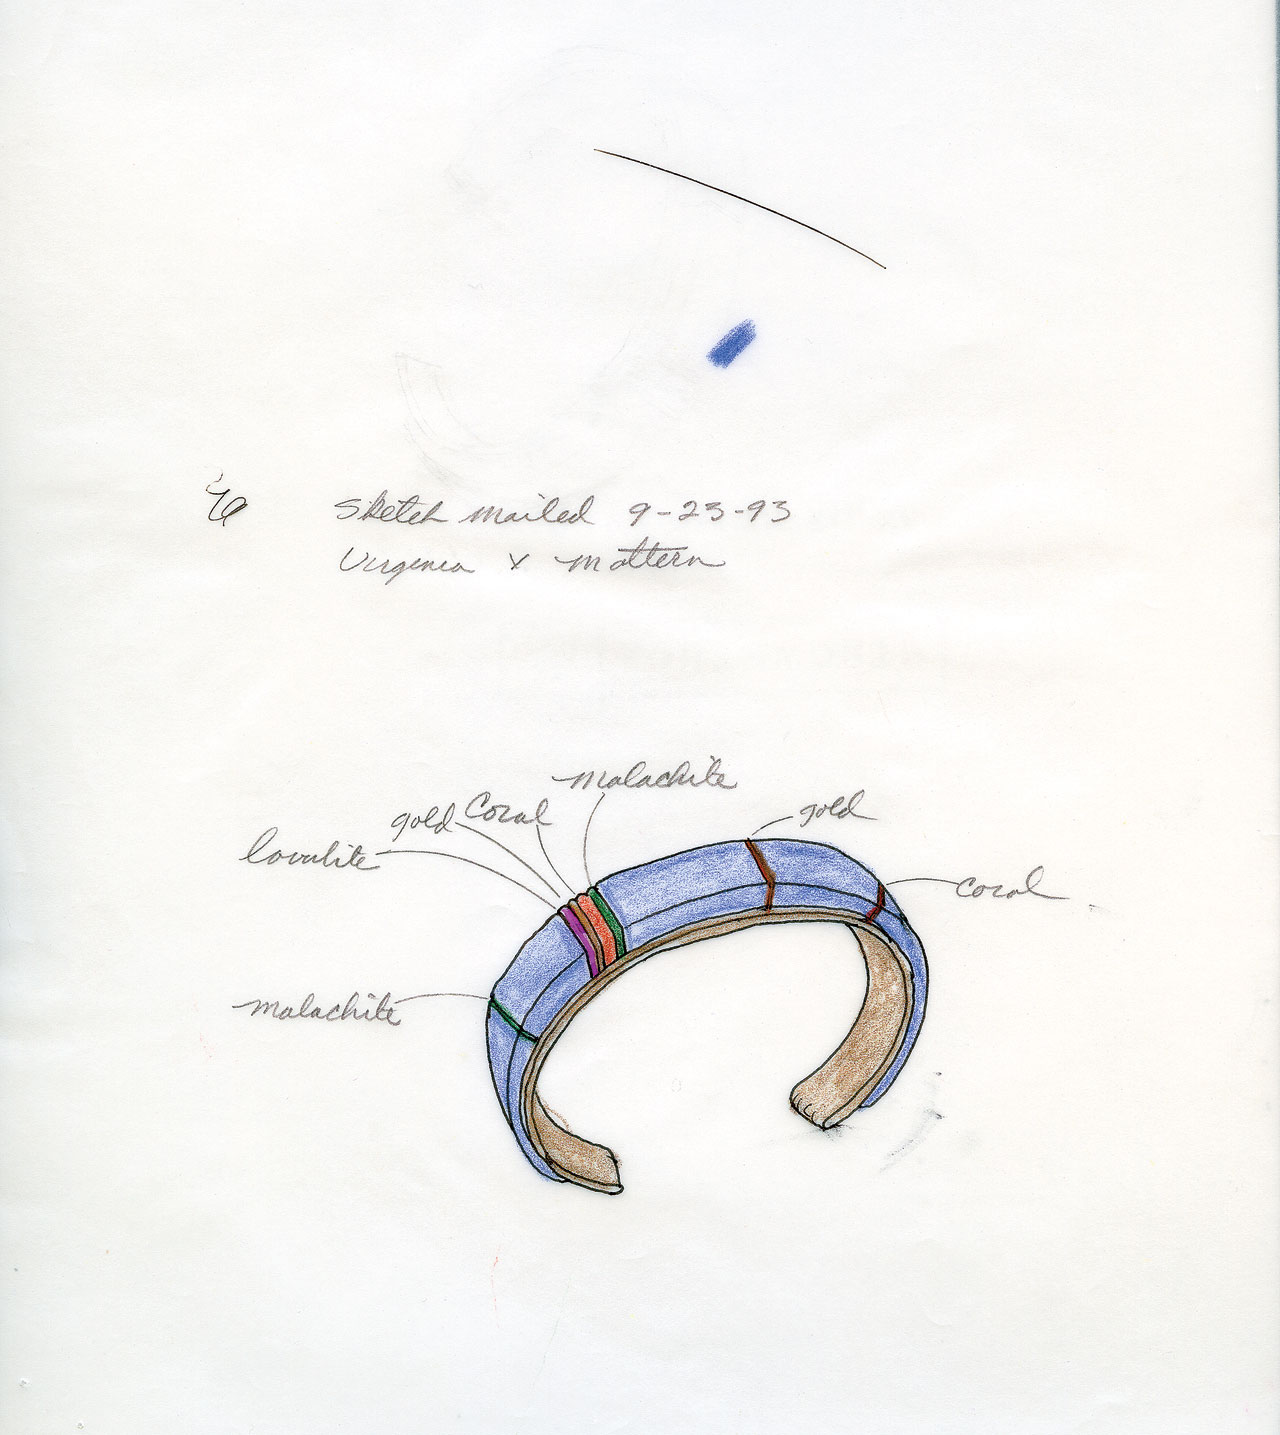 PREPARATORY DRAWINGS of works; one containing the necklace shown here. Chavez sketches all of his pieces to scale and on the final drawing will add notes about materials and dimensions. He has kept many of the drawings to record the development of his career over time.